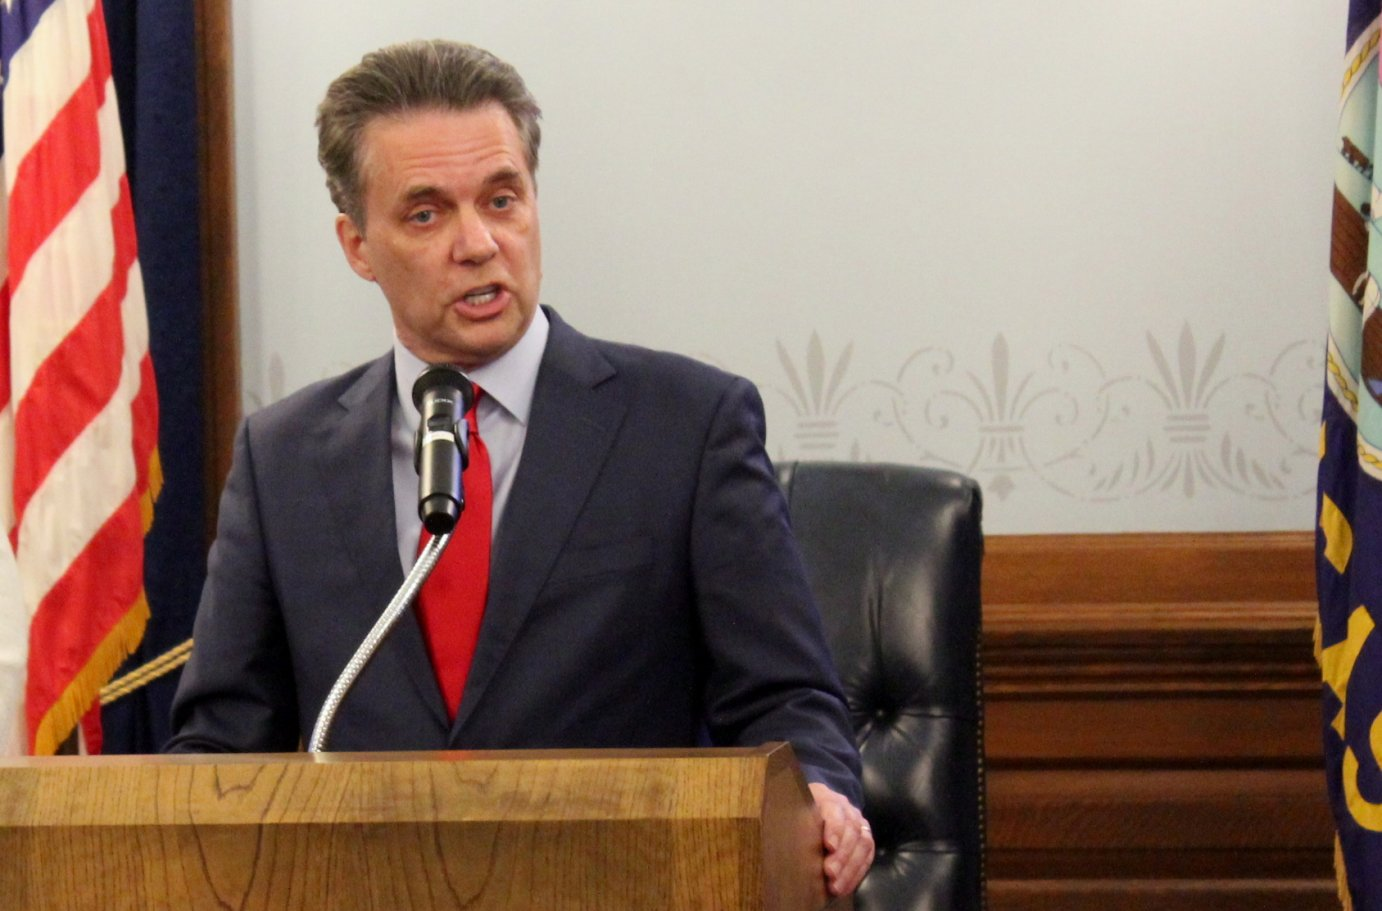 Colyer speaking at an event in November. (Photo by Stephen Koranda)